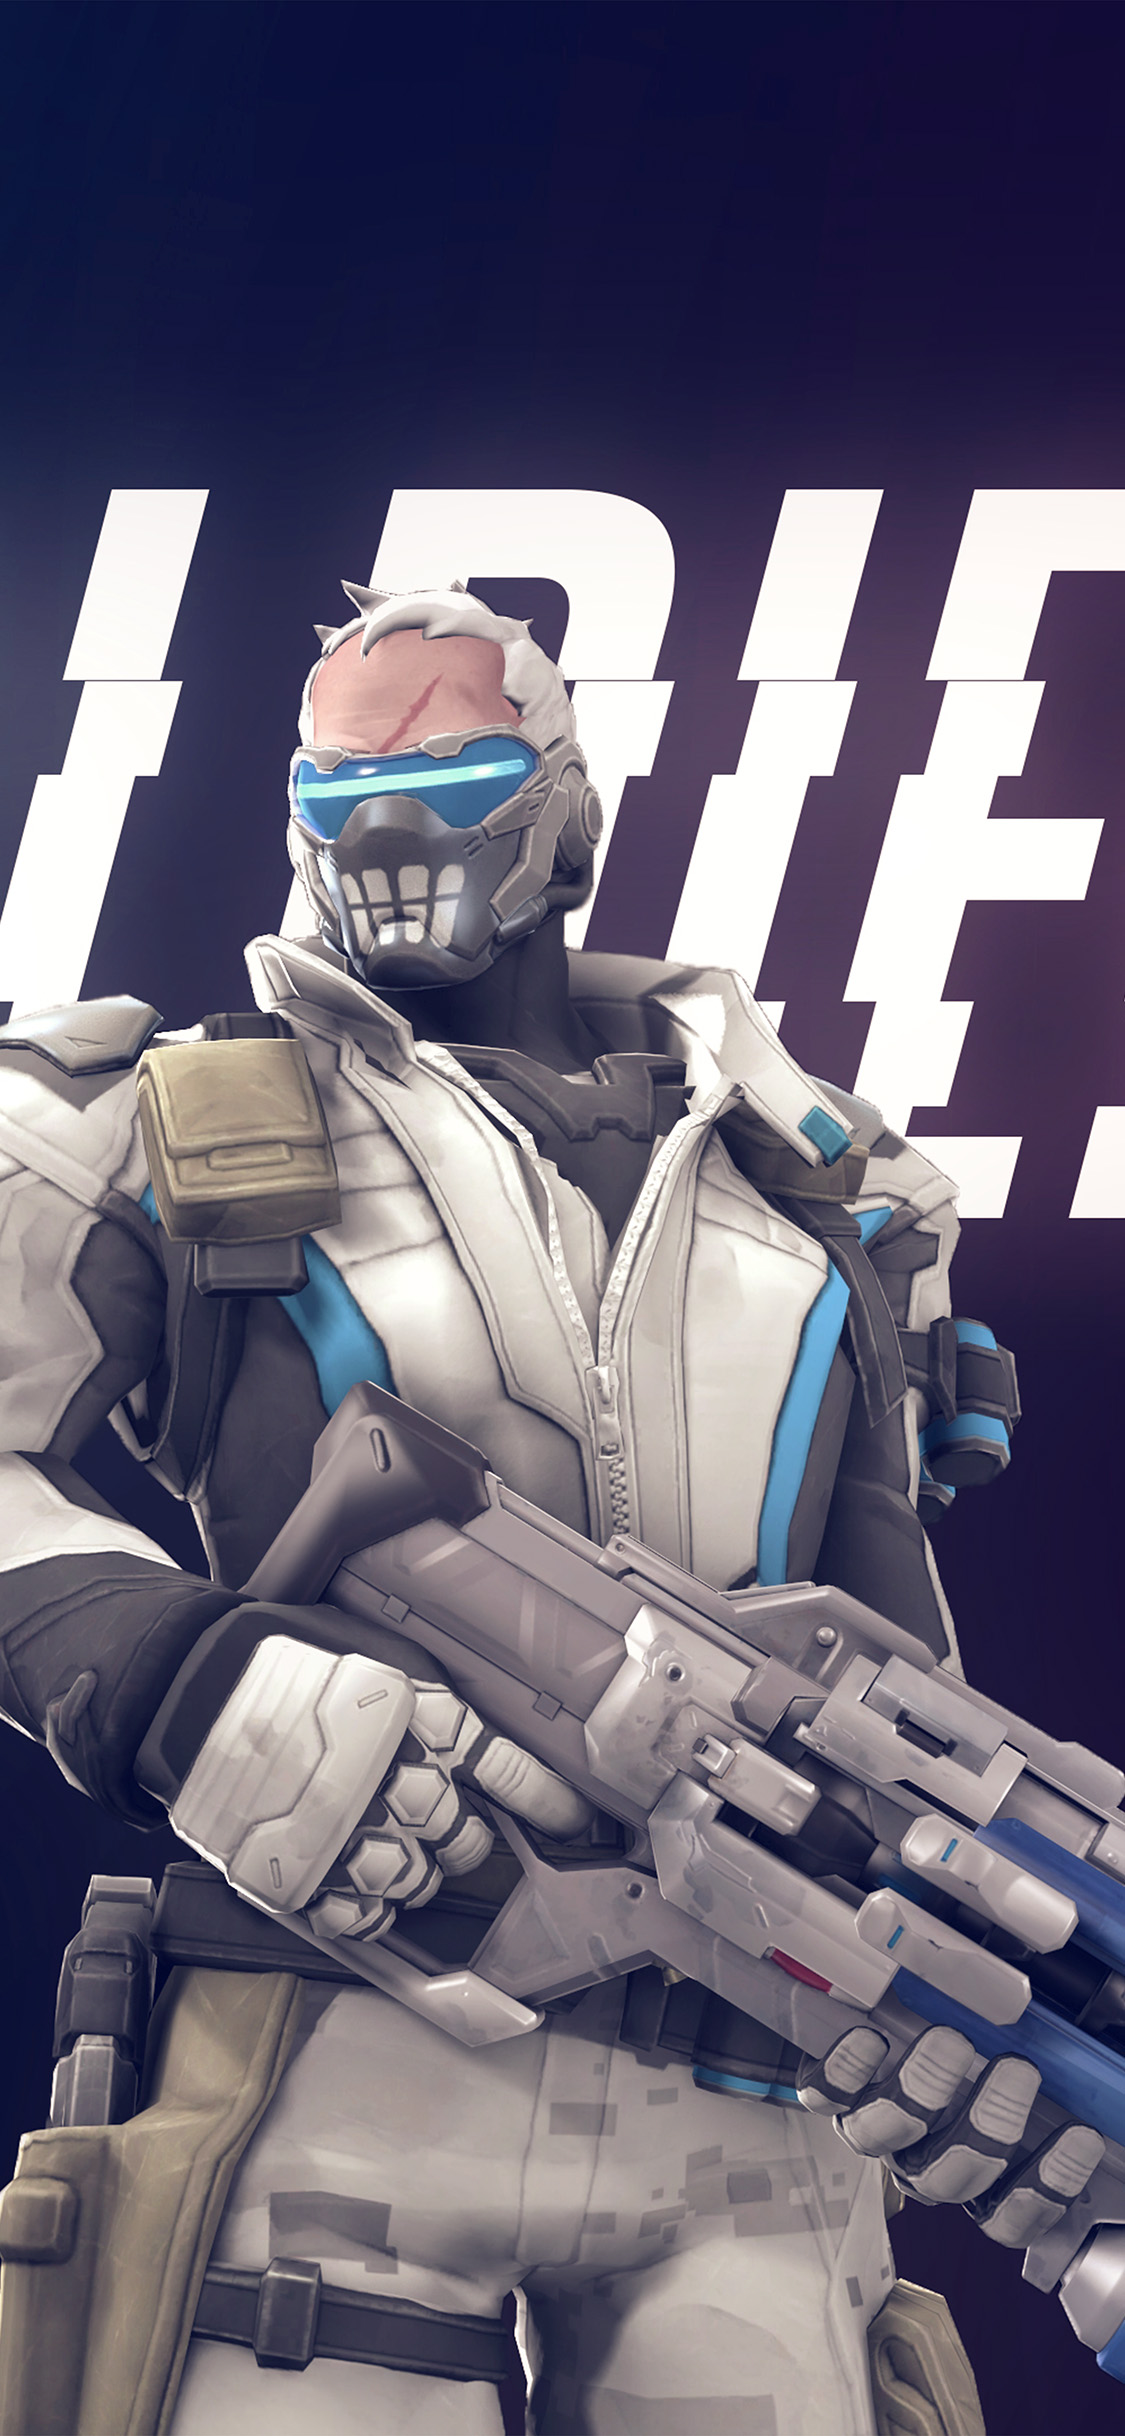 iPhonexpapers.com-Apple-iPhone-wallpaper-bc98-overwatch-soldier-game-art-illustration